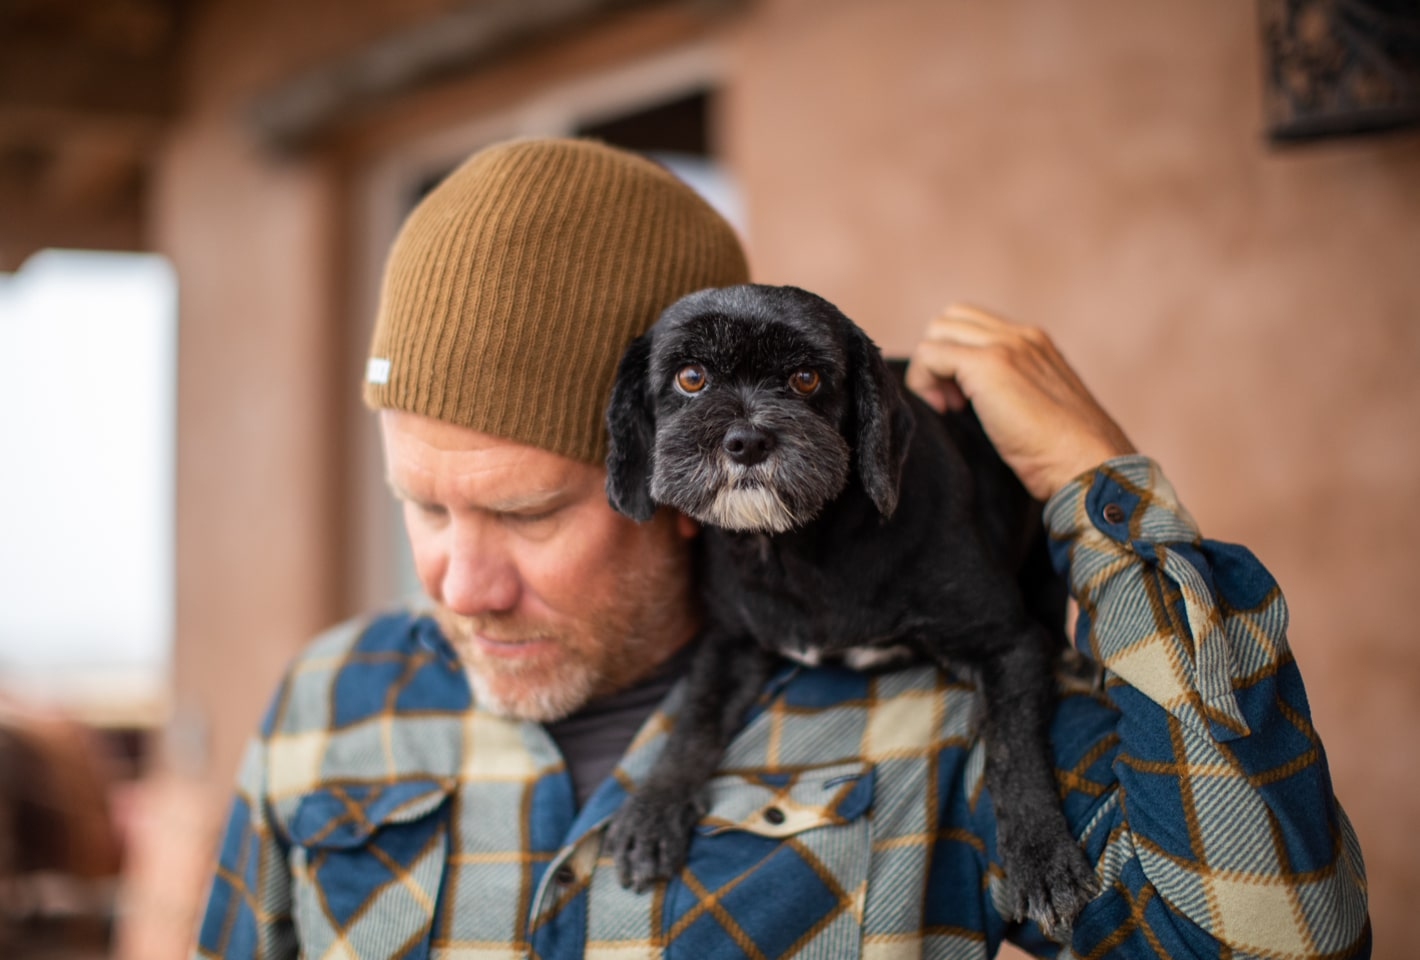 Ron with Chevy the dog sitting on his shoulder